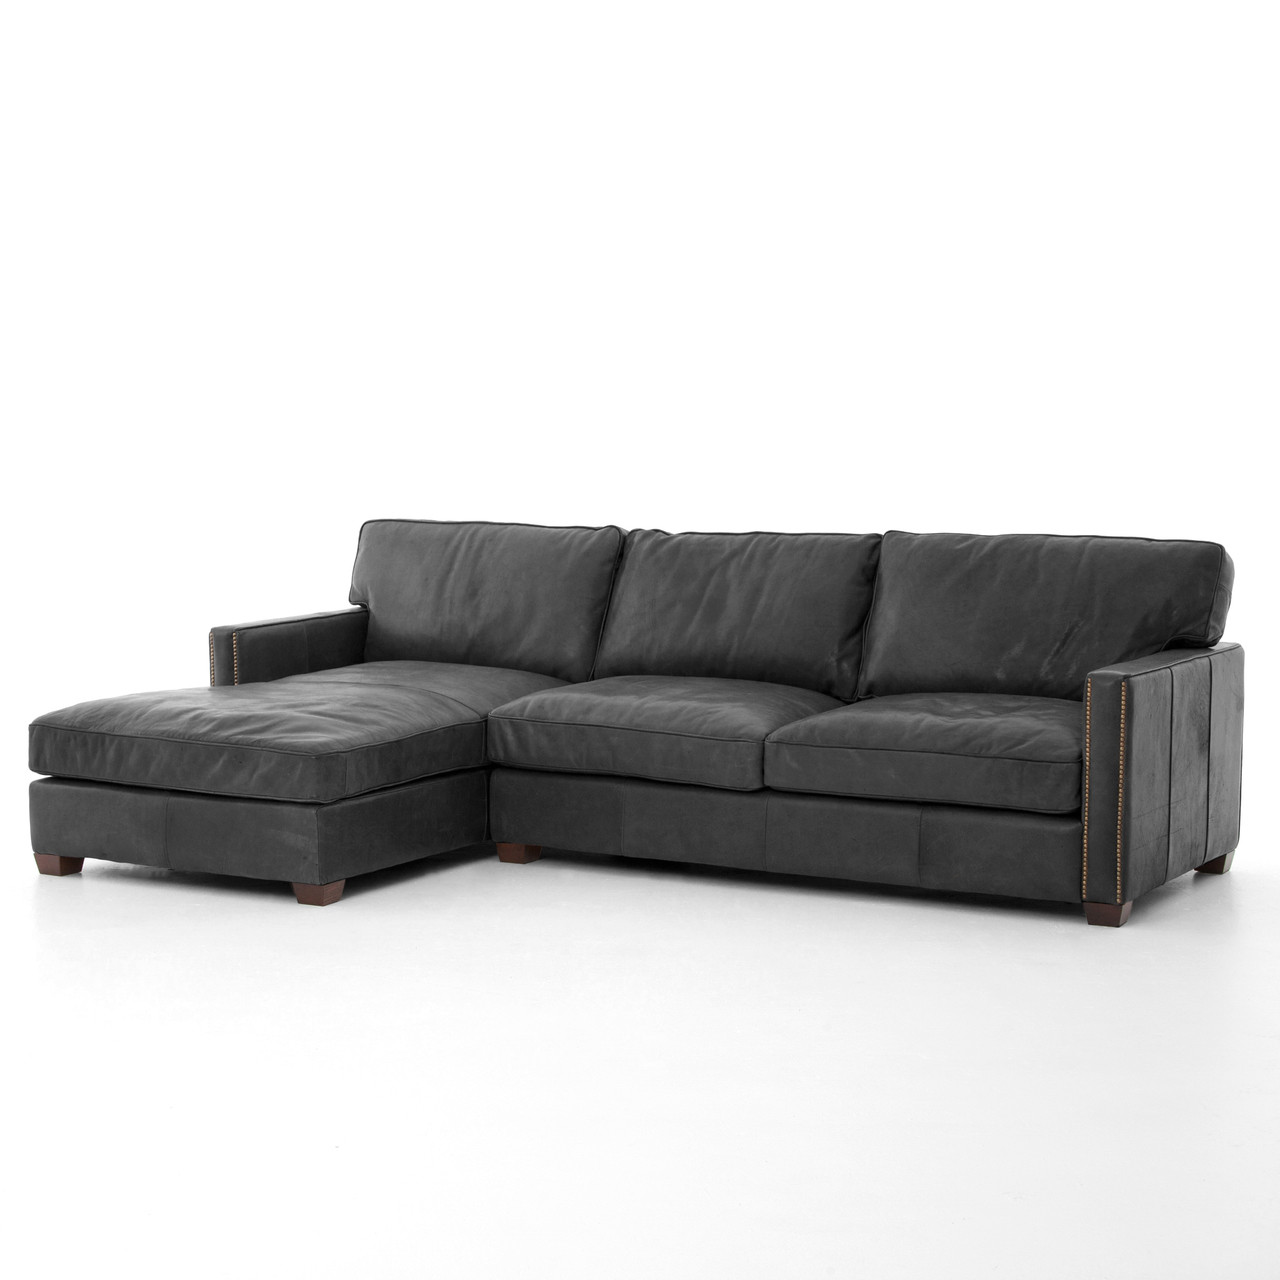 Larkin Vintage Black Distressed Leather Sectional Sofa With Chaise